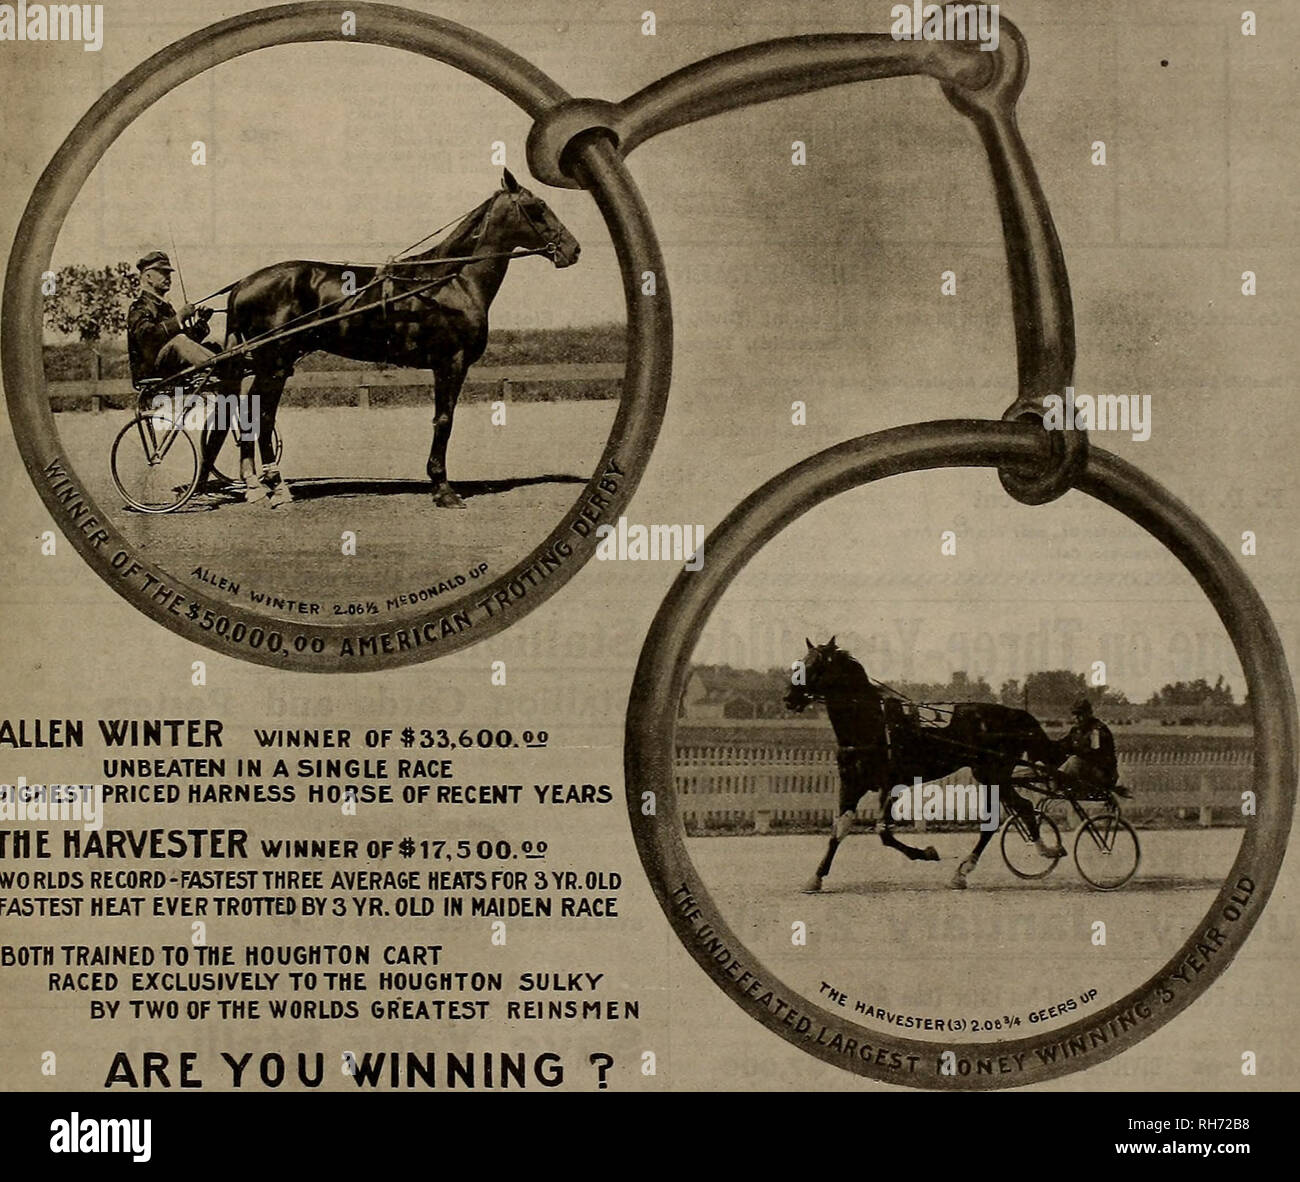 ". Breeder and sportsman. Horses. Saturday, December 26, 190S.] THE BREEDER AND SPORTSMAN ( ™E *i a u its n* twmE a A BIT THE BEST n. ALLEN WINTER winner of #33.600.00 UNBEATEN IN A SINGLE RACE HIGHEST PRICED HARNESS HORSE OF RECENT YEARS THE HARVESTER winnerof#i7,5oo.°° WORLDS RECORD-FASTEST THREE AVERAGE HEATS FOR 3YR.0LD FASTEST HEAT EVER TROTTED BY 3 YR. OLD IN MAIDEN RACE BOTH TRAINED TO THE HOUGHTON CART RACED EXCLUSIVELY TO THE HOUGHTON SULKY BY TWO OF THE WORLDS GREATEST REINSMEN ARE YOU WINNING ? REMEMBER: we are the sole originators of the ""aluminum lined"" wood rims which ha - Stock Image"